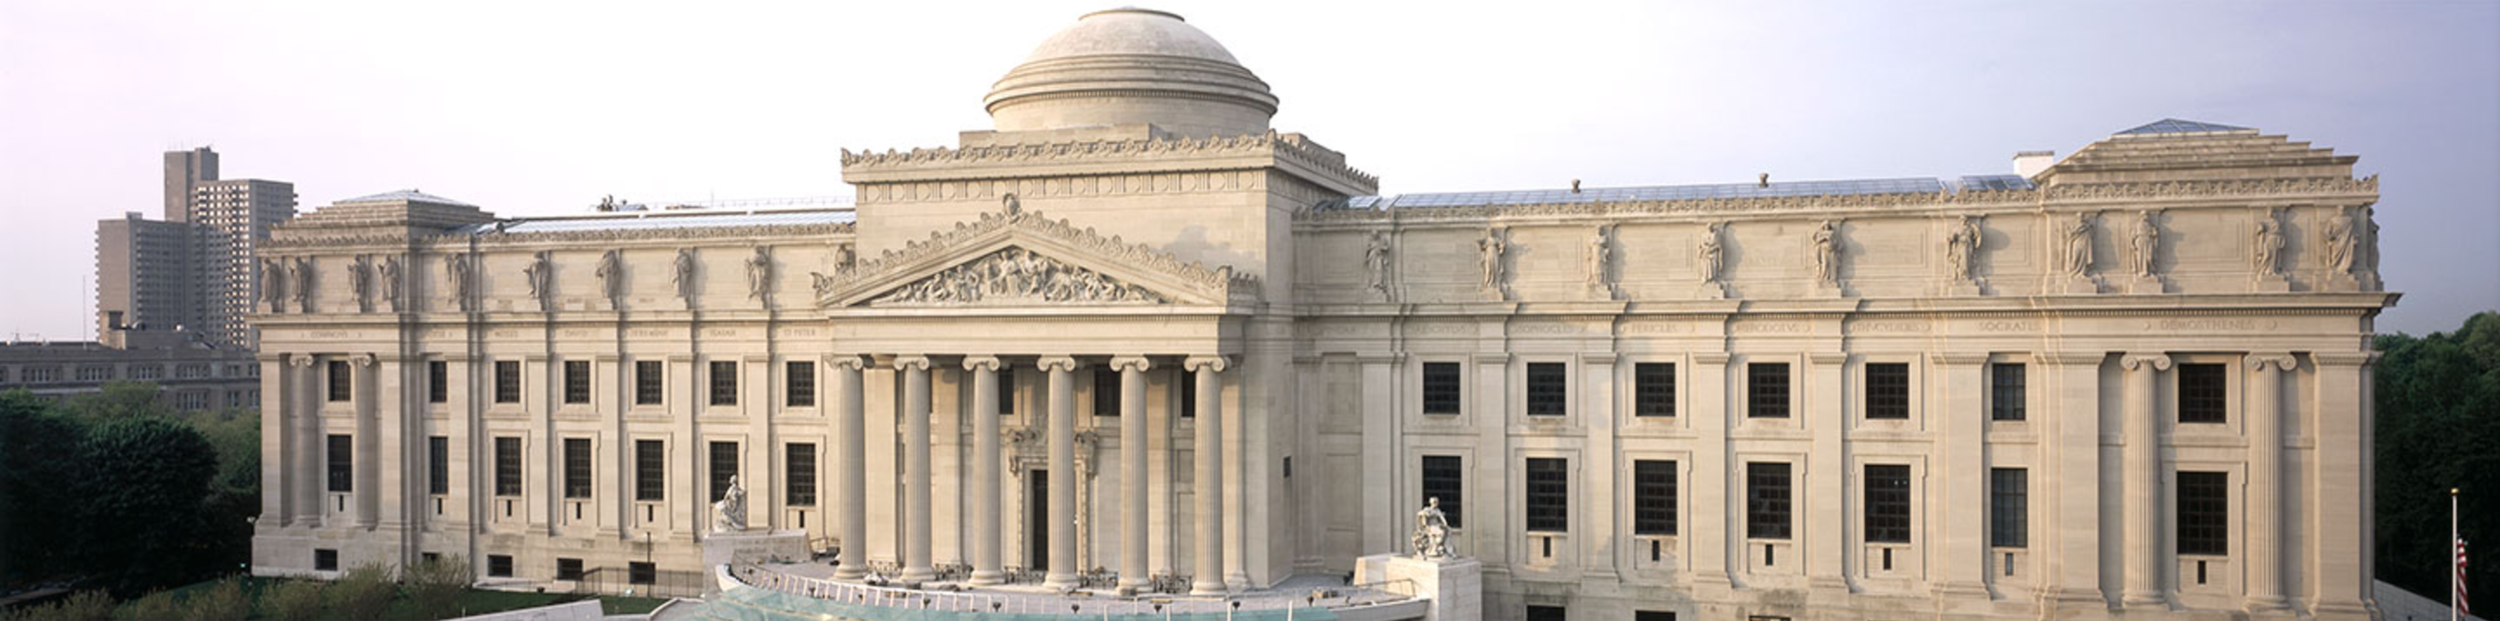 https://www.brooklynmuseum.org/   200 Eastern Parkway Brooklyn, NY  At the Brooklyn Museum you can explore an extensive and comprehensive permanent collection that includes ancient Egyptian masterpieces, African art, European painting, decorative arts, period rooms, and contemporary art.